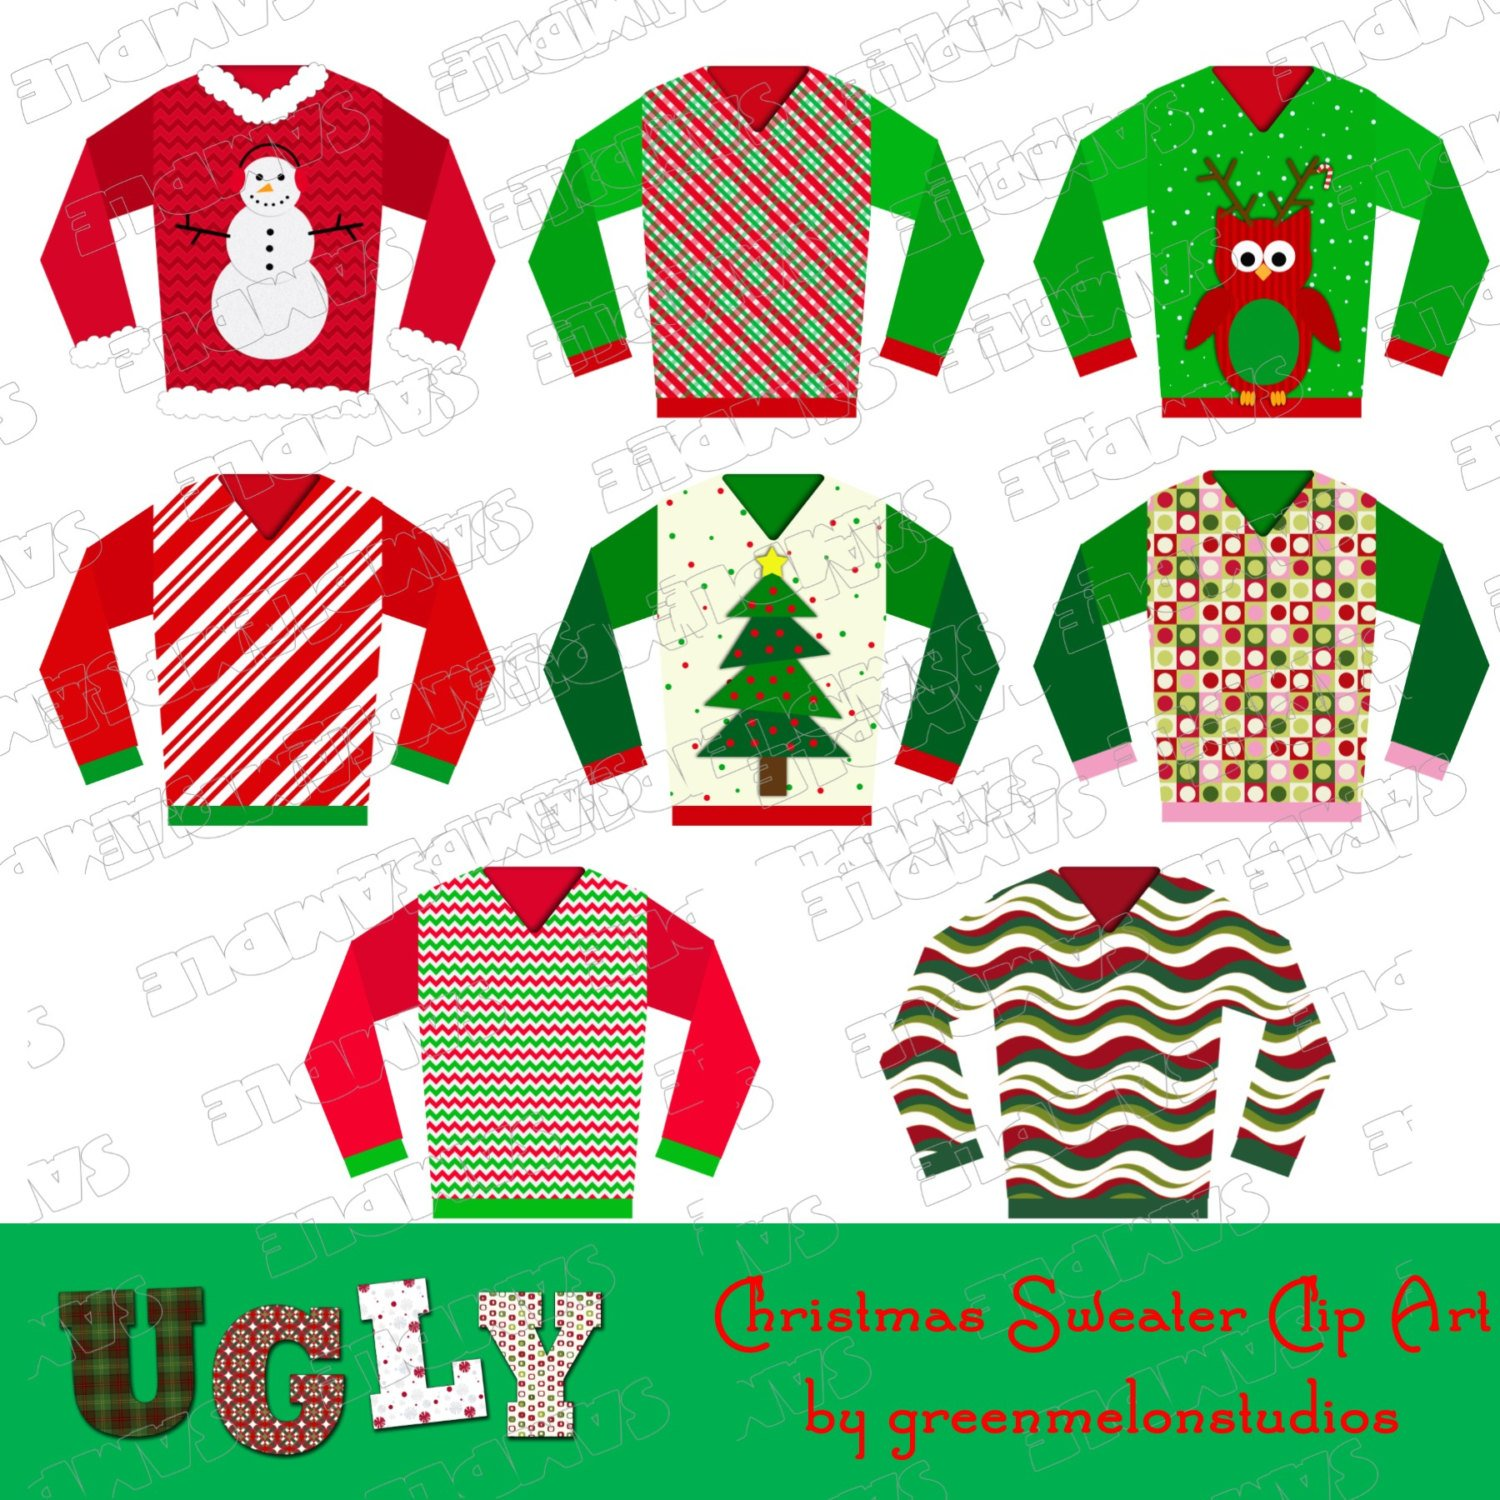 Christmas Sweater Clipart.Christmas Sweaters Clipart 7 Clipart Station